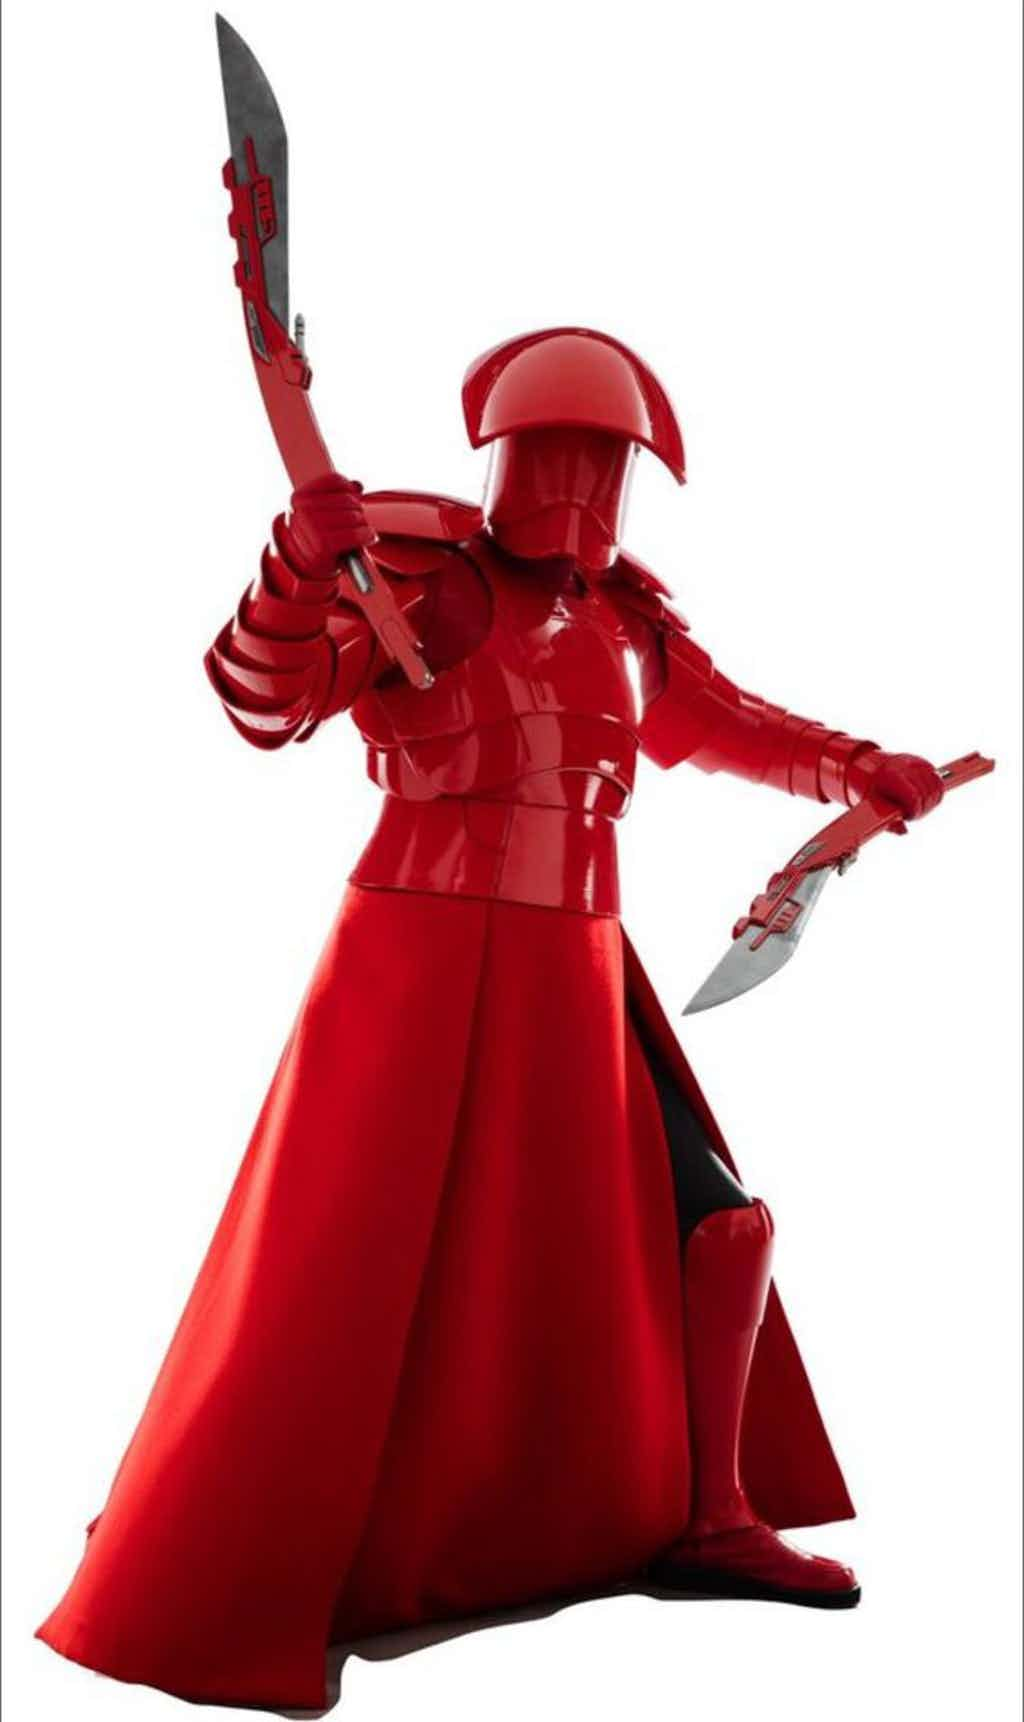 Star-Wars-The-Last-Jedi-Snokes-Royal-Praetorian-Red-Guard-Holding-Blades.jpg